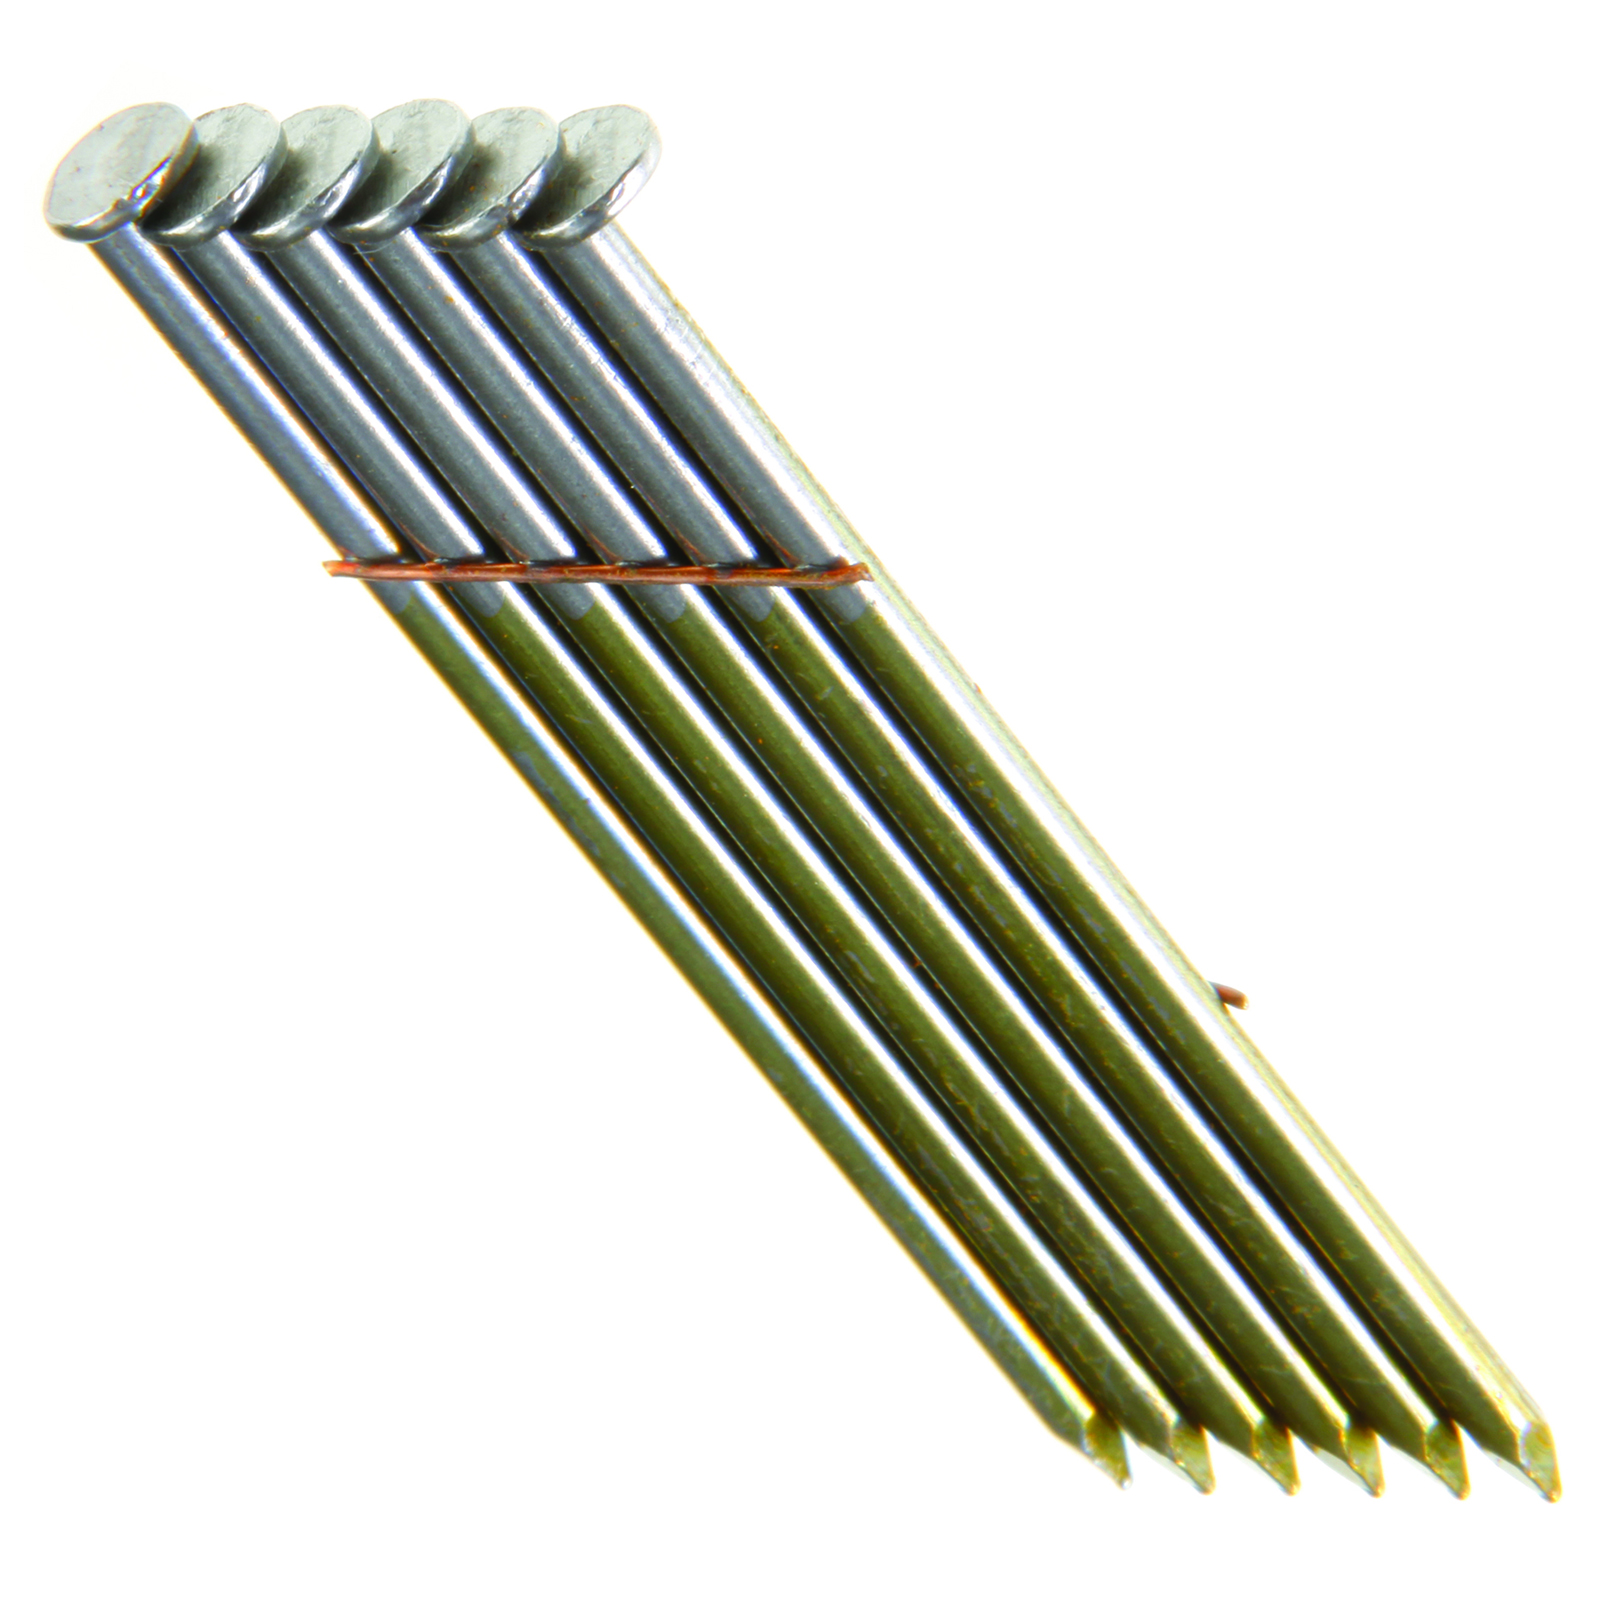 28 6D RH WIRE SMTH COATED STICK NAIL